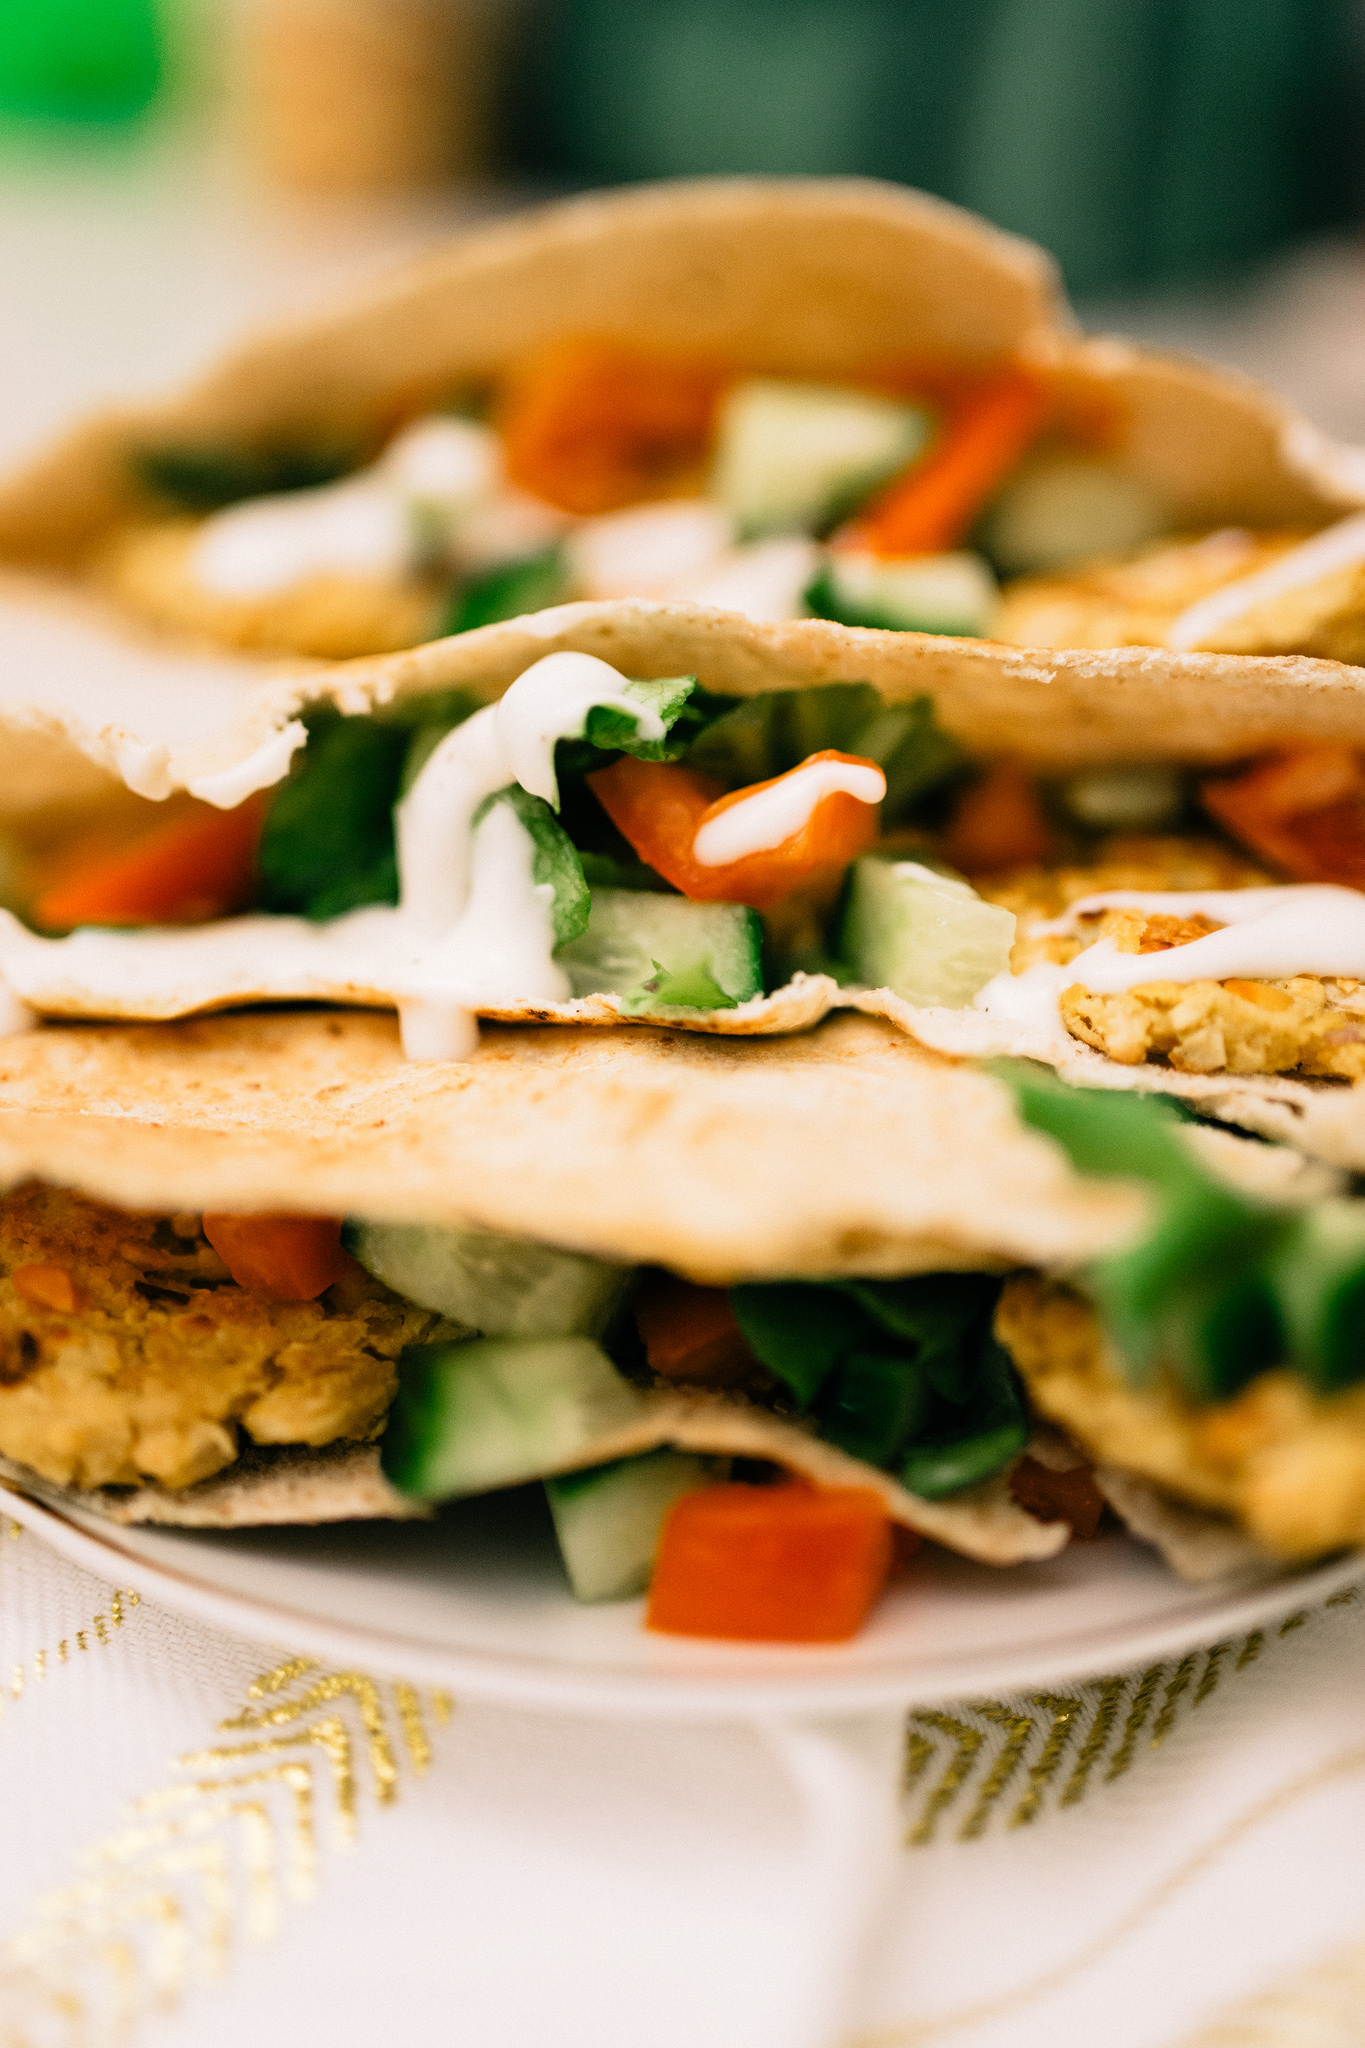 baked vegan falafel recipe